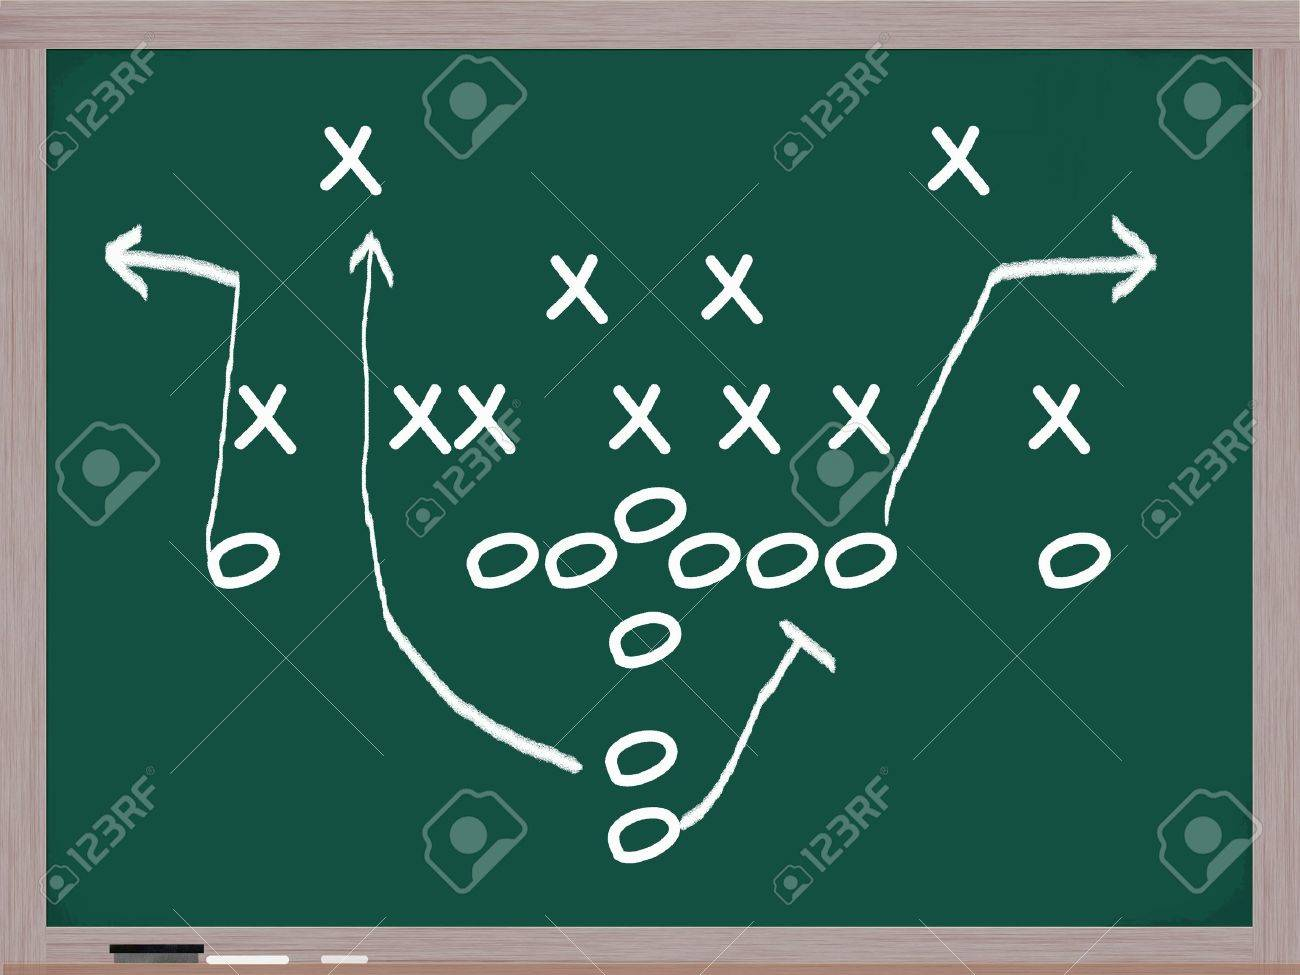 a football play diagram on a chalkboard in white chalk showing  : football play diagram - findchart.co